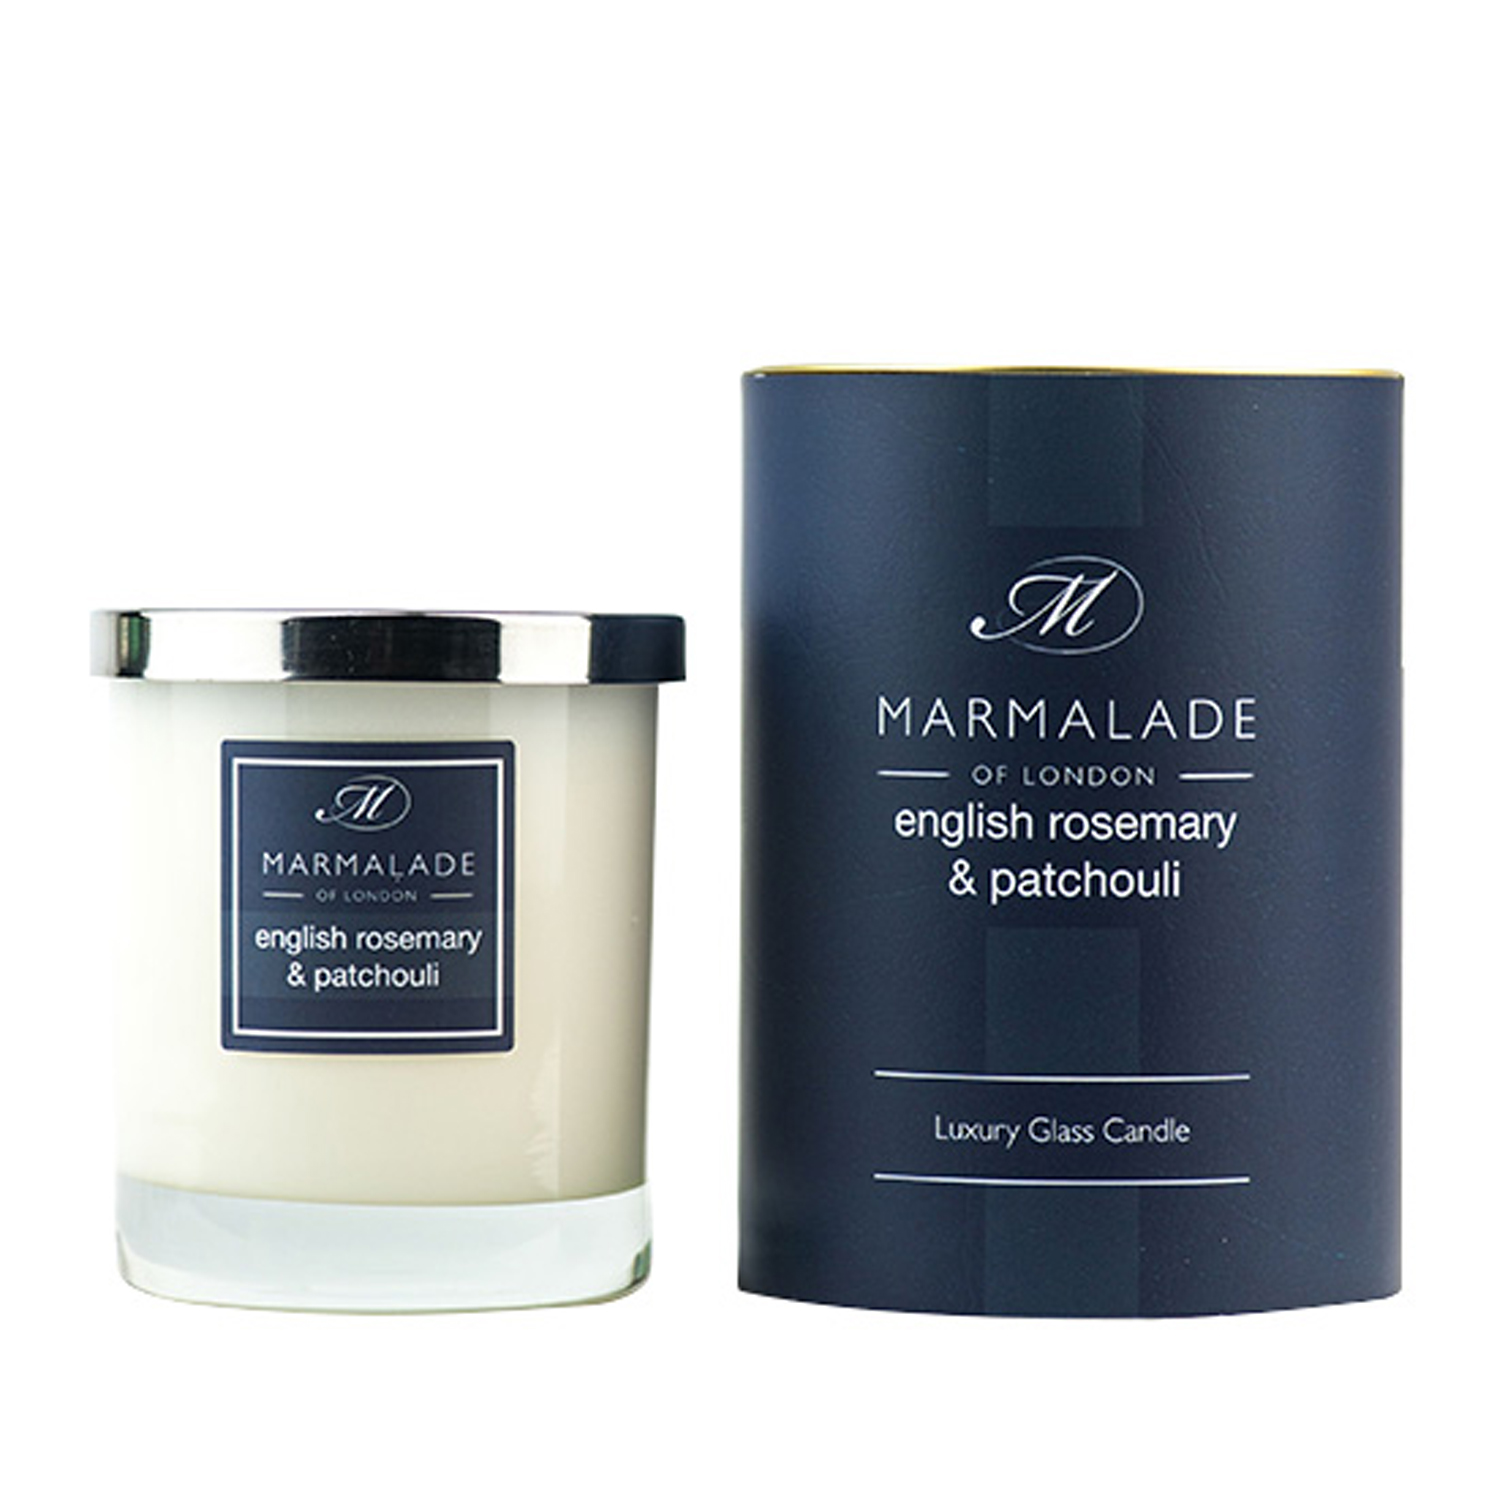 00174 English rosemary and patchouli glass candle